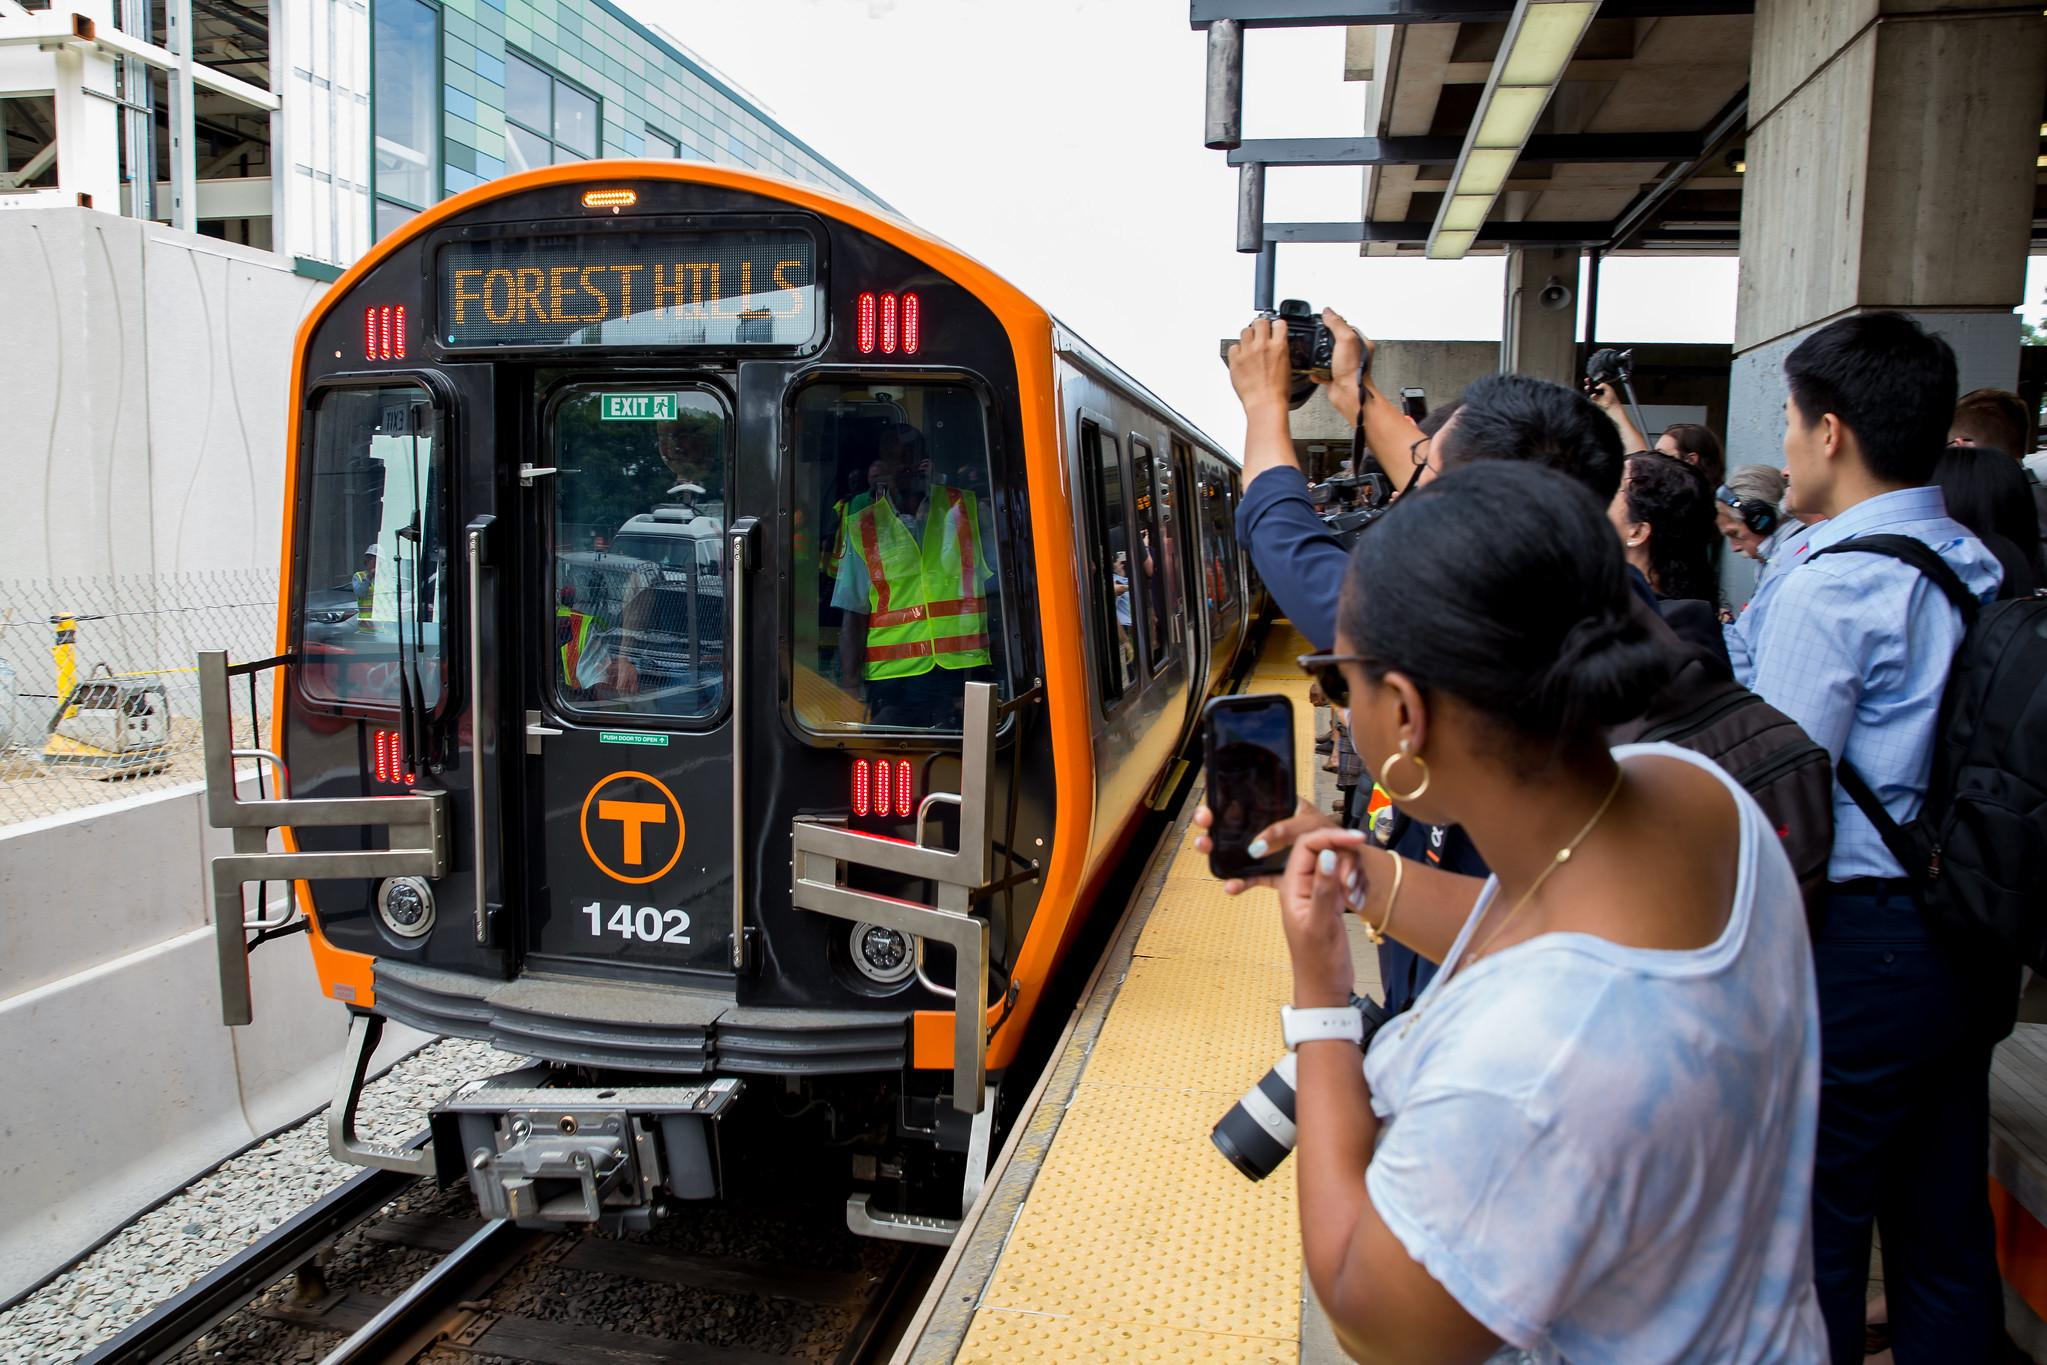 New Orange Line car at Wellington, as a crowd on the platform takes photos.